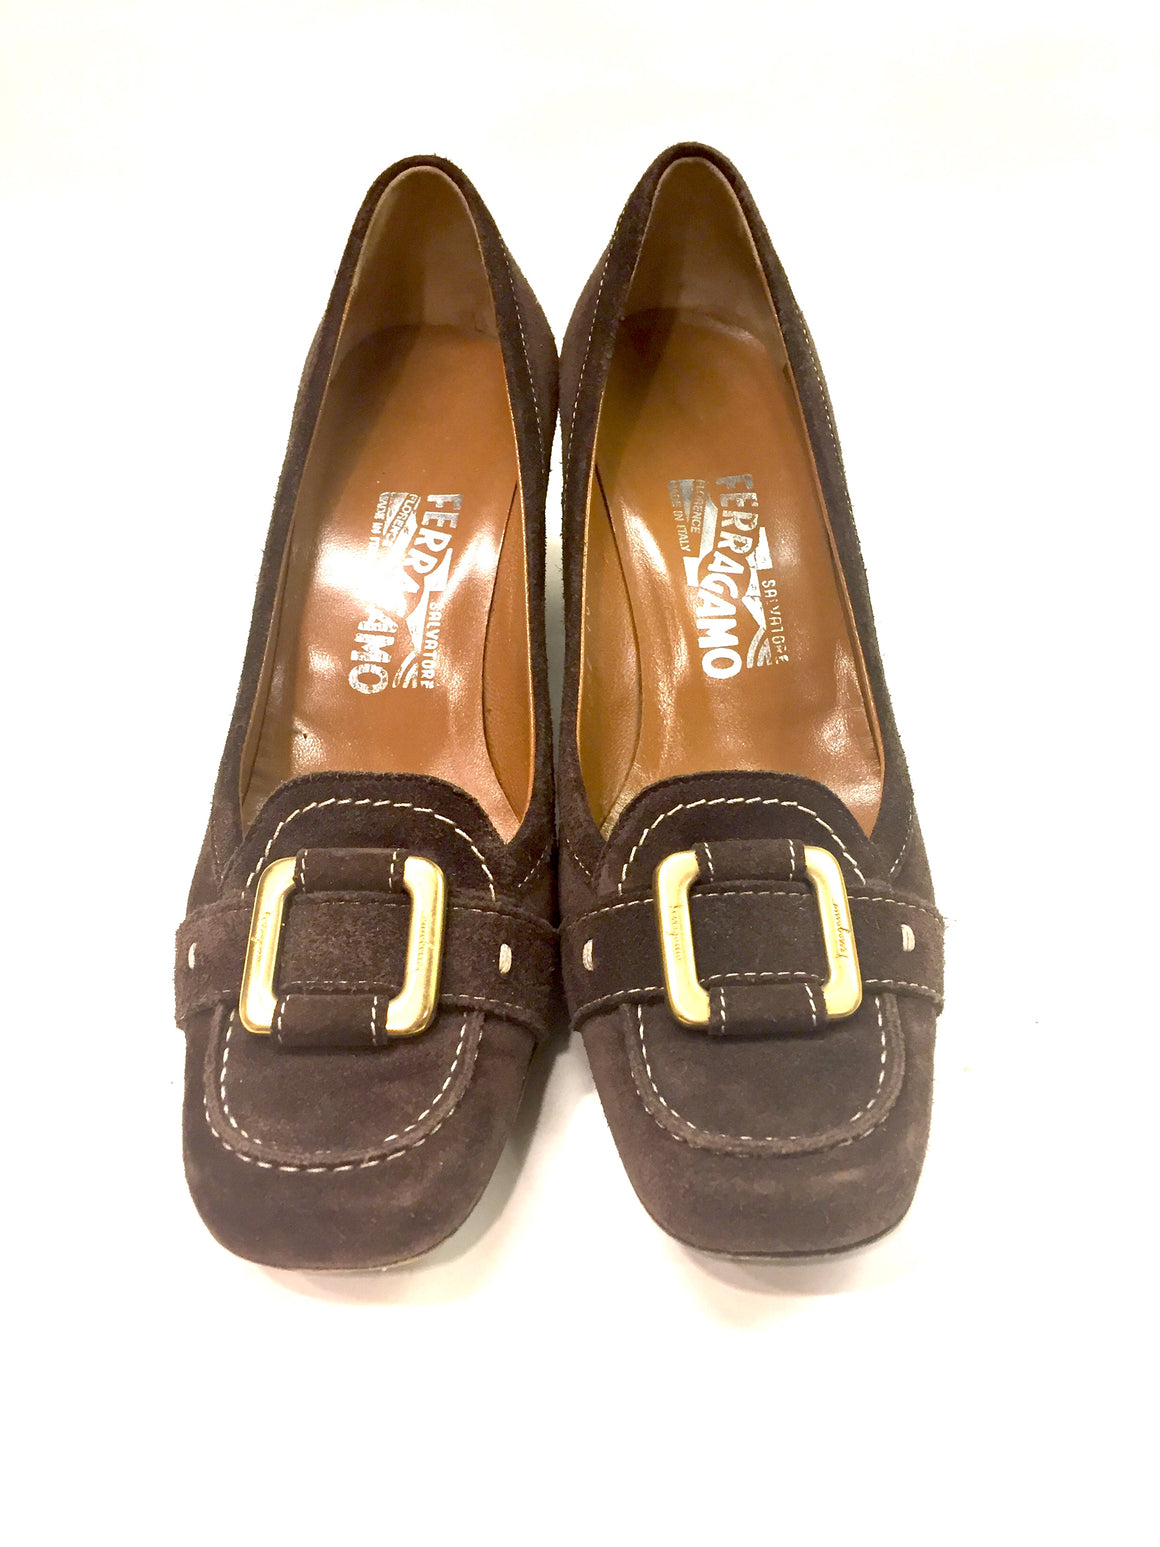 FERRAGAMO Brown Suede Bronze Buckle Block HeelPumps Sz6.5B